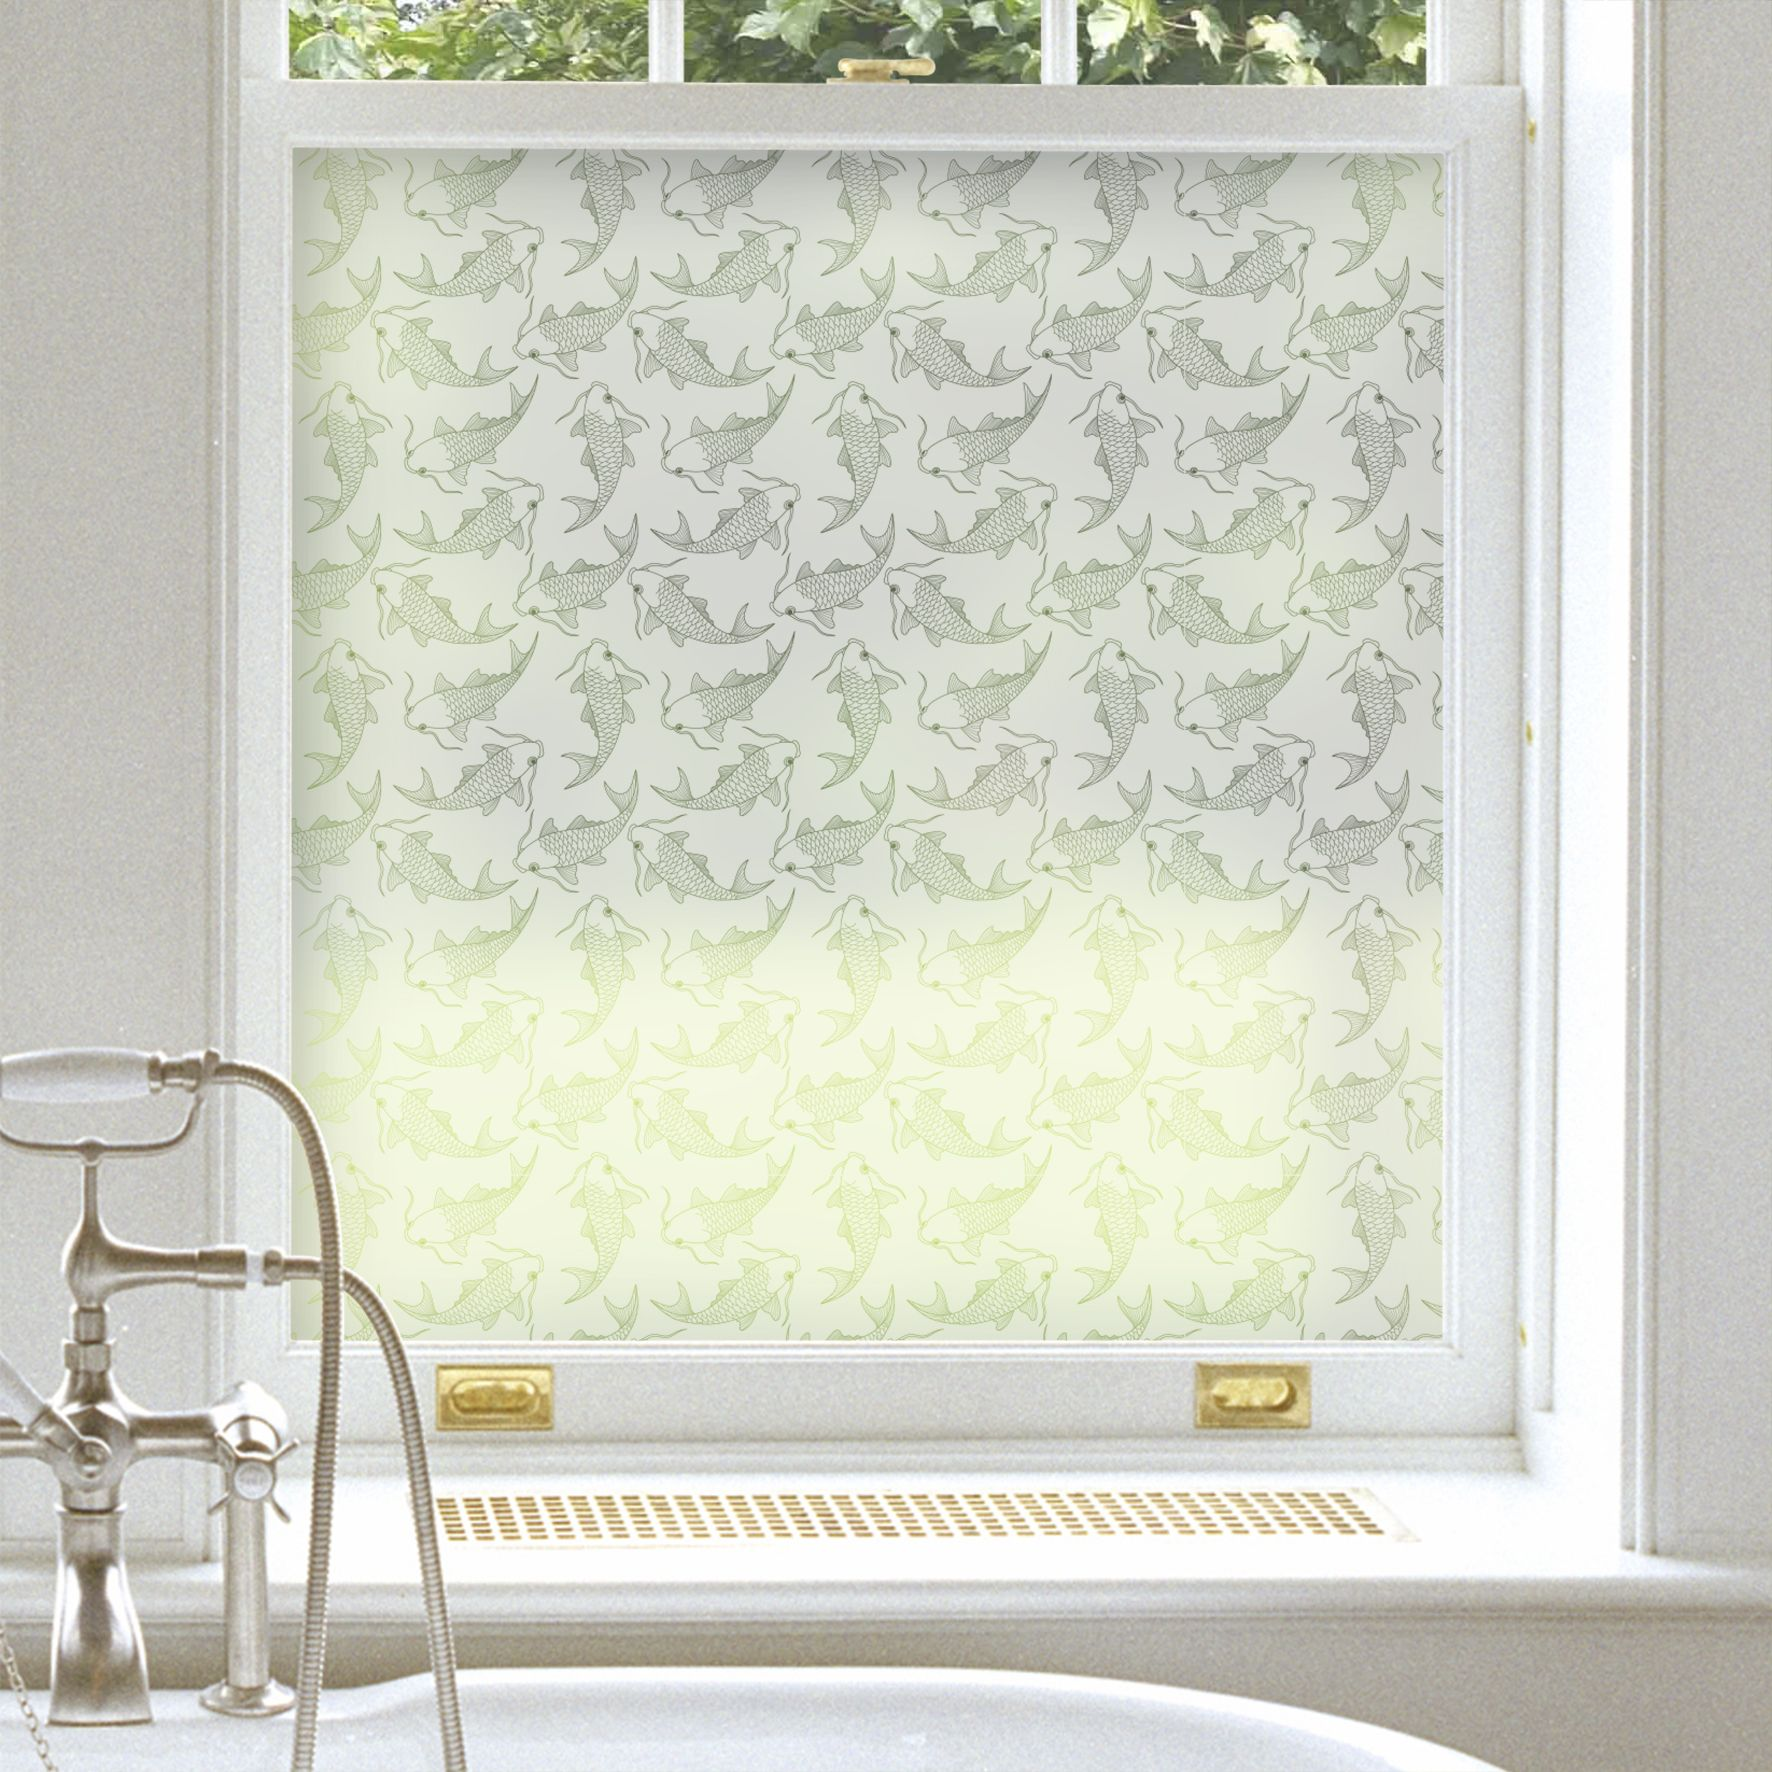 "Koi Carp"" frosted glass film ideal for a bathroom window"